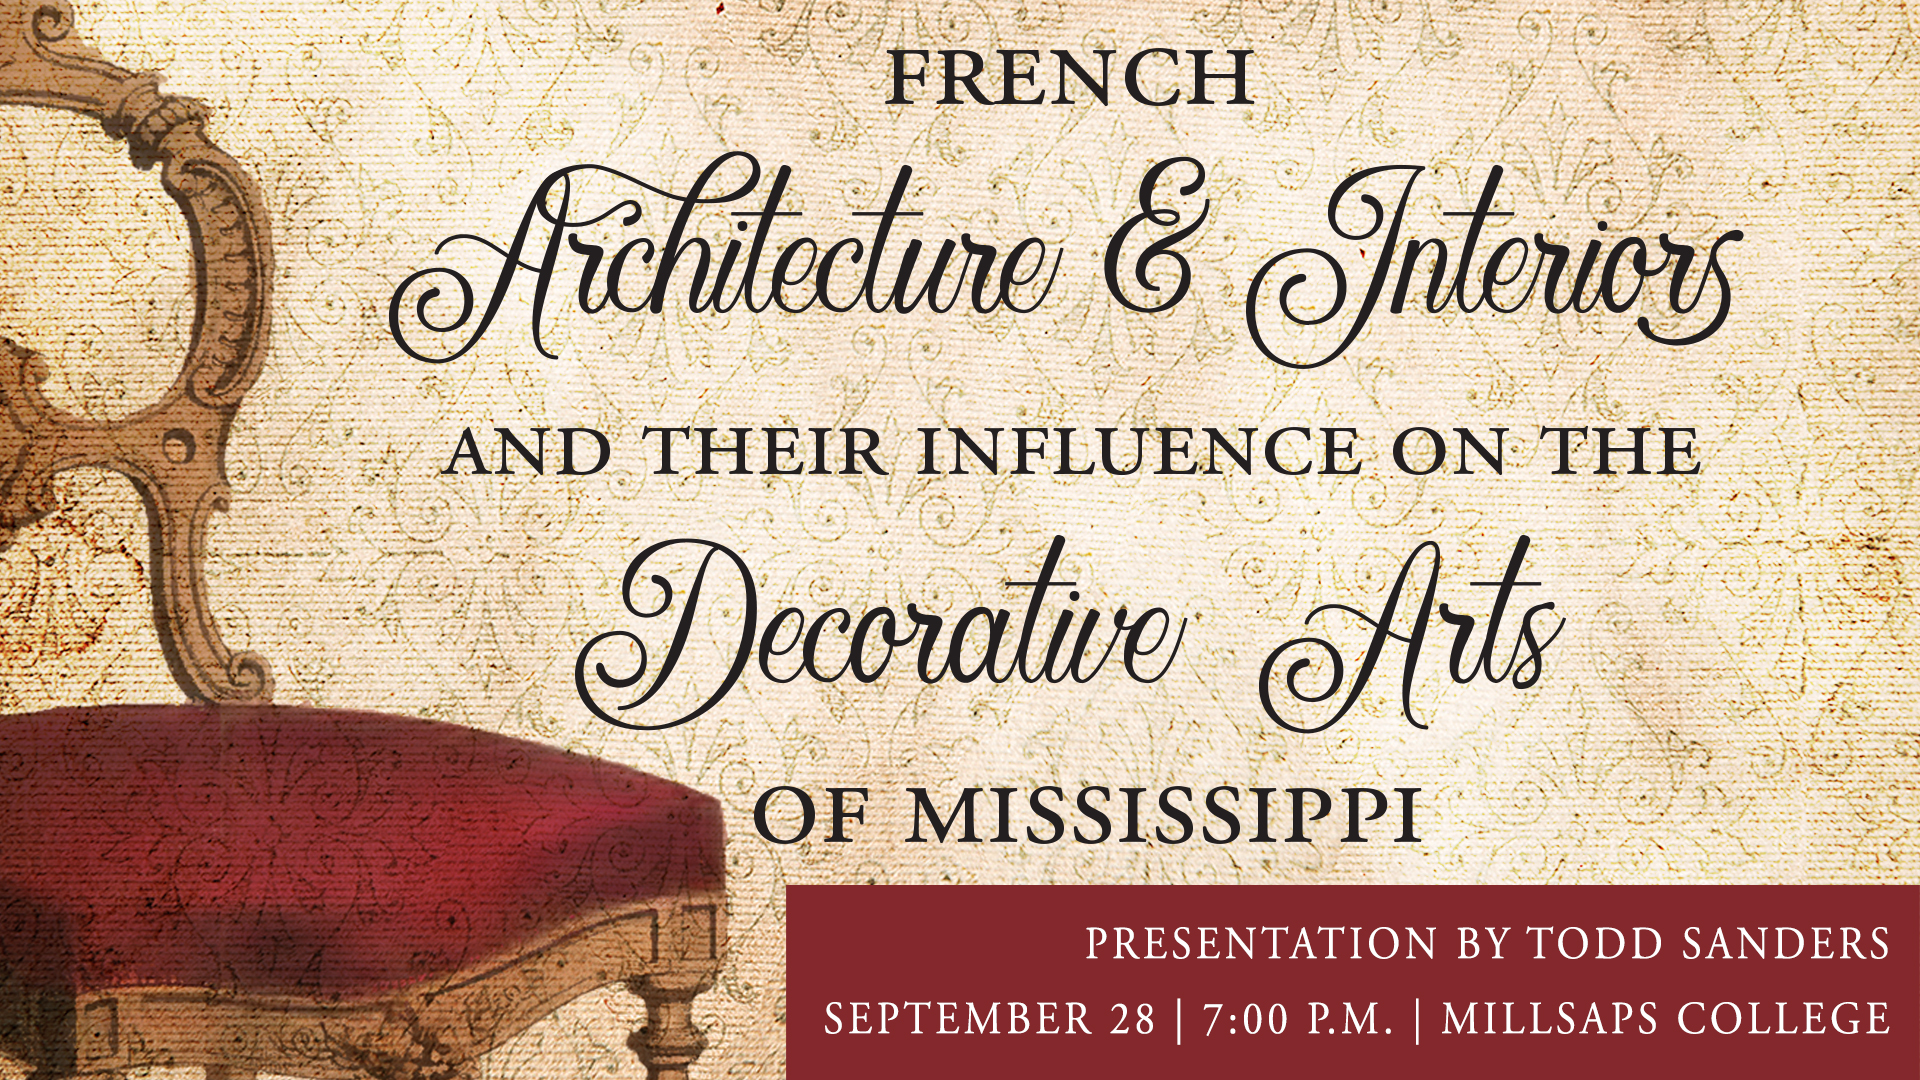 French Architecture & Interiors | Todd Sanders | Alliance Française de Jackson